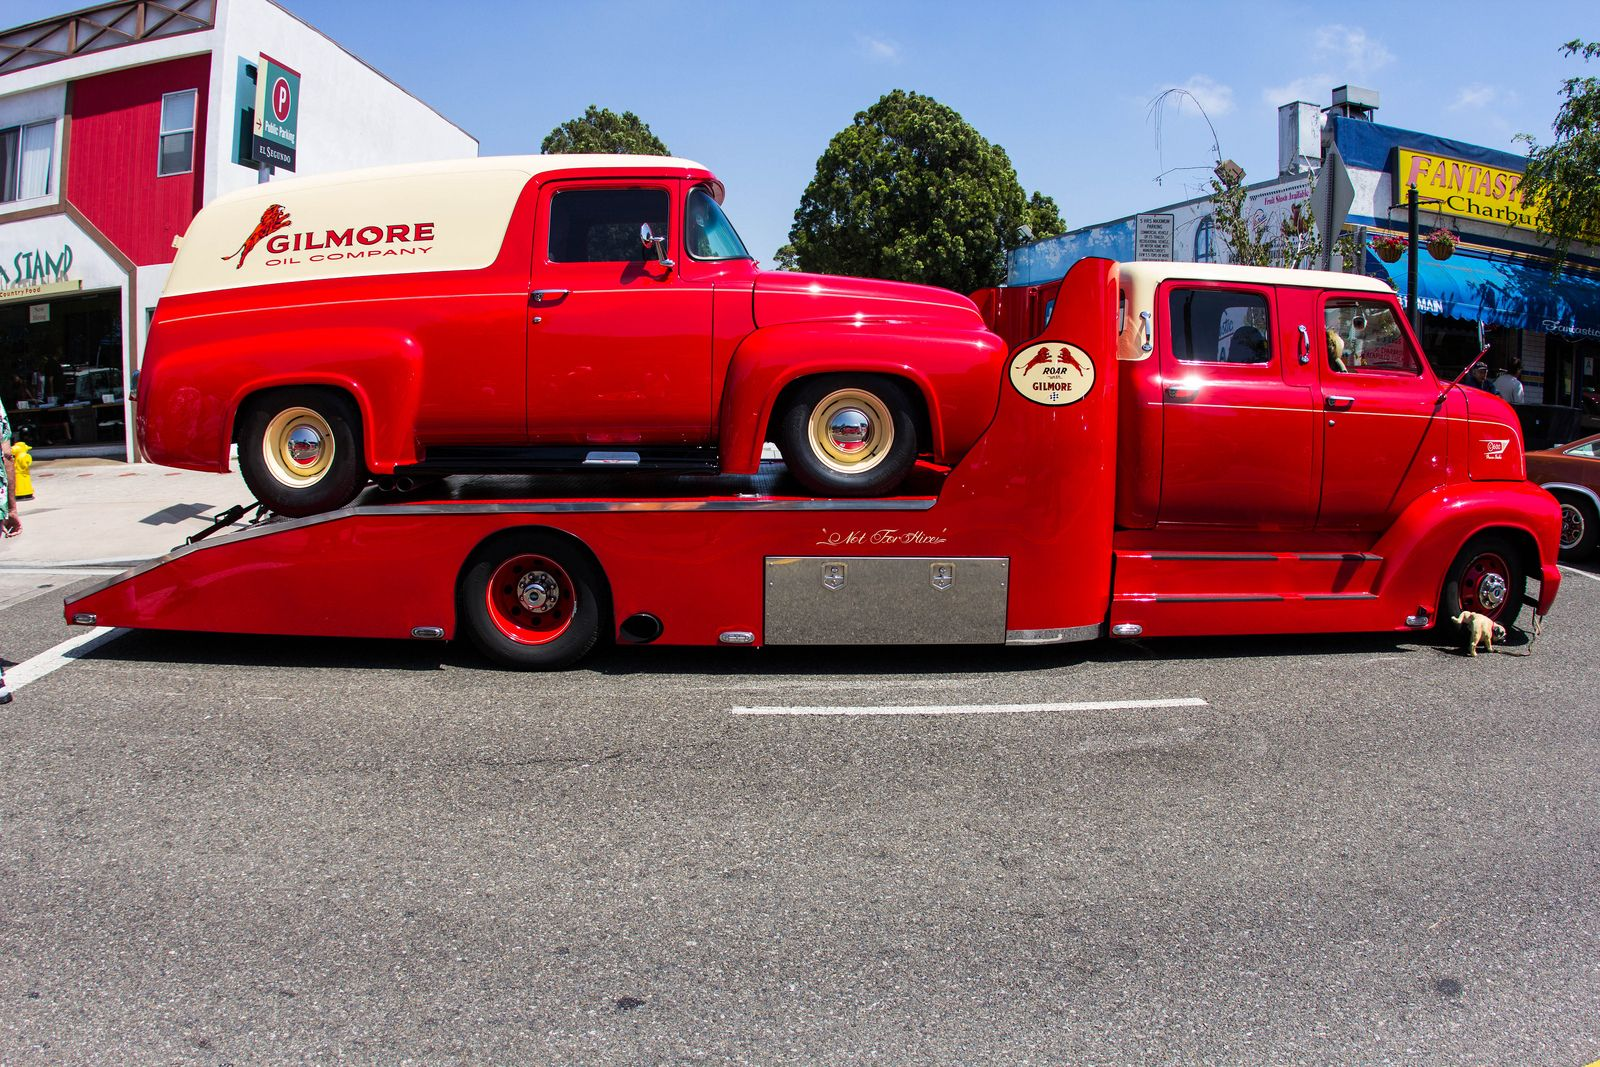 1953 Ford Cab Over Engine Coe Crew Hauler With 1956 F 100 1949 Panel Truck Van Flickr Photo Sharing